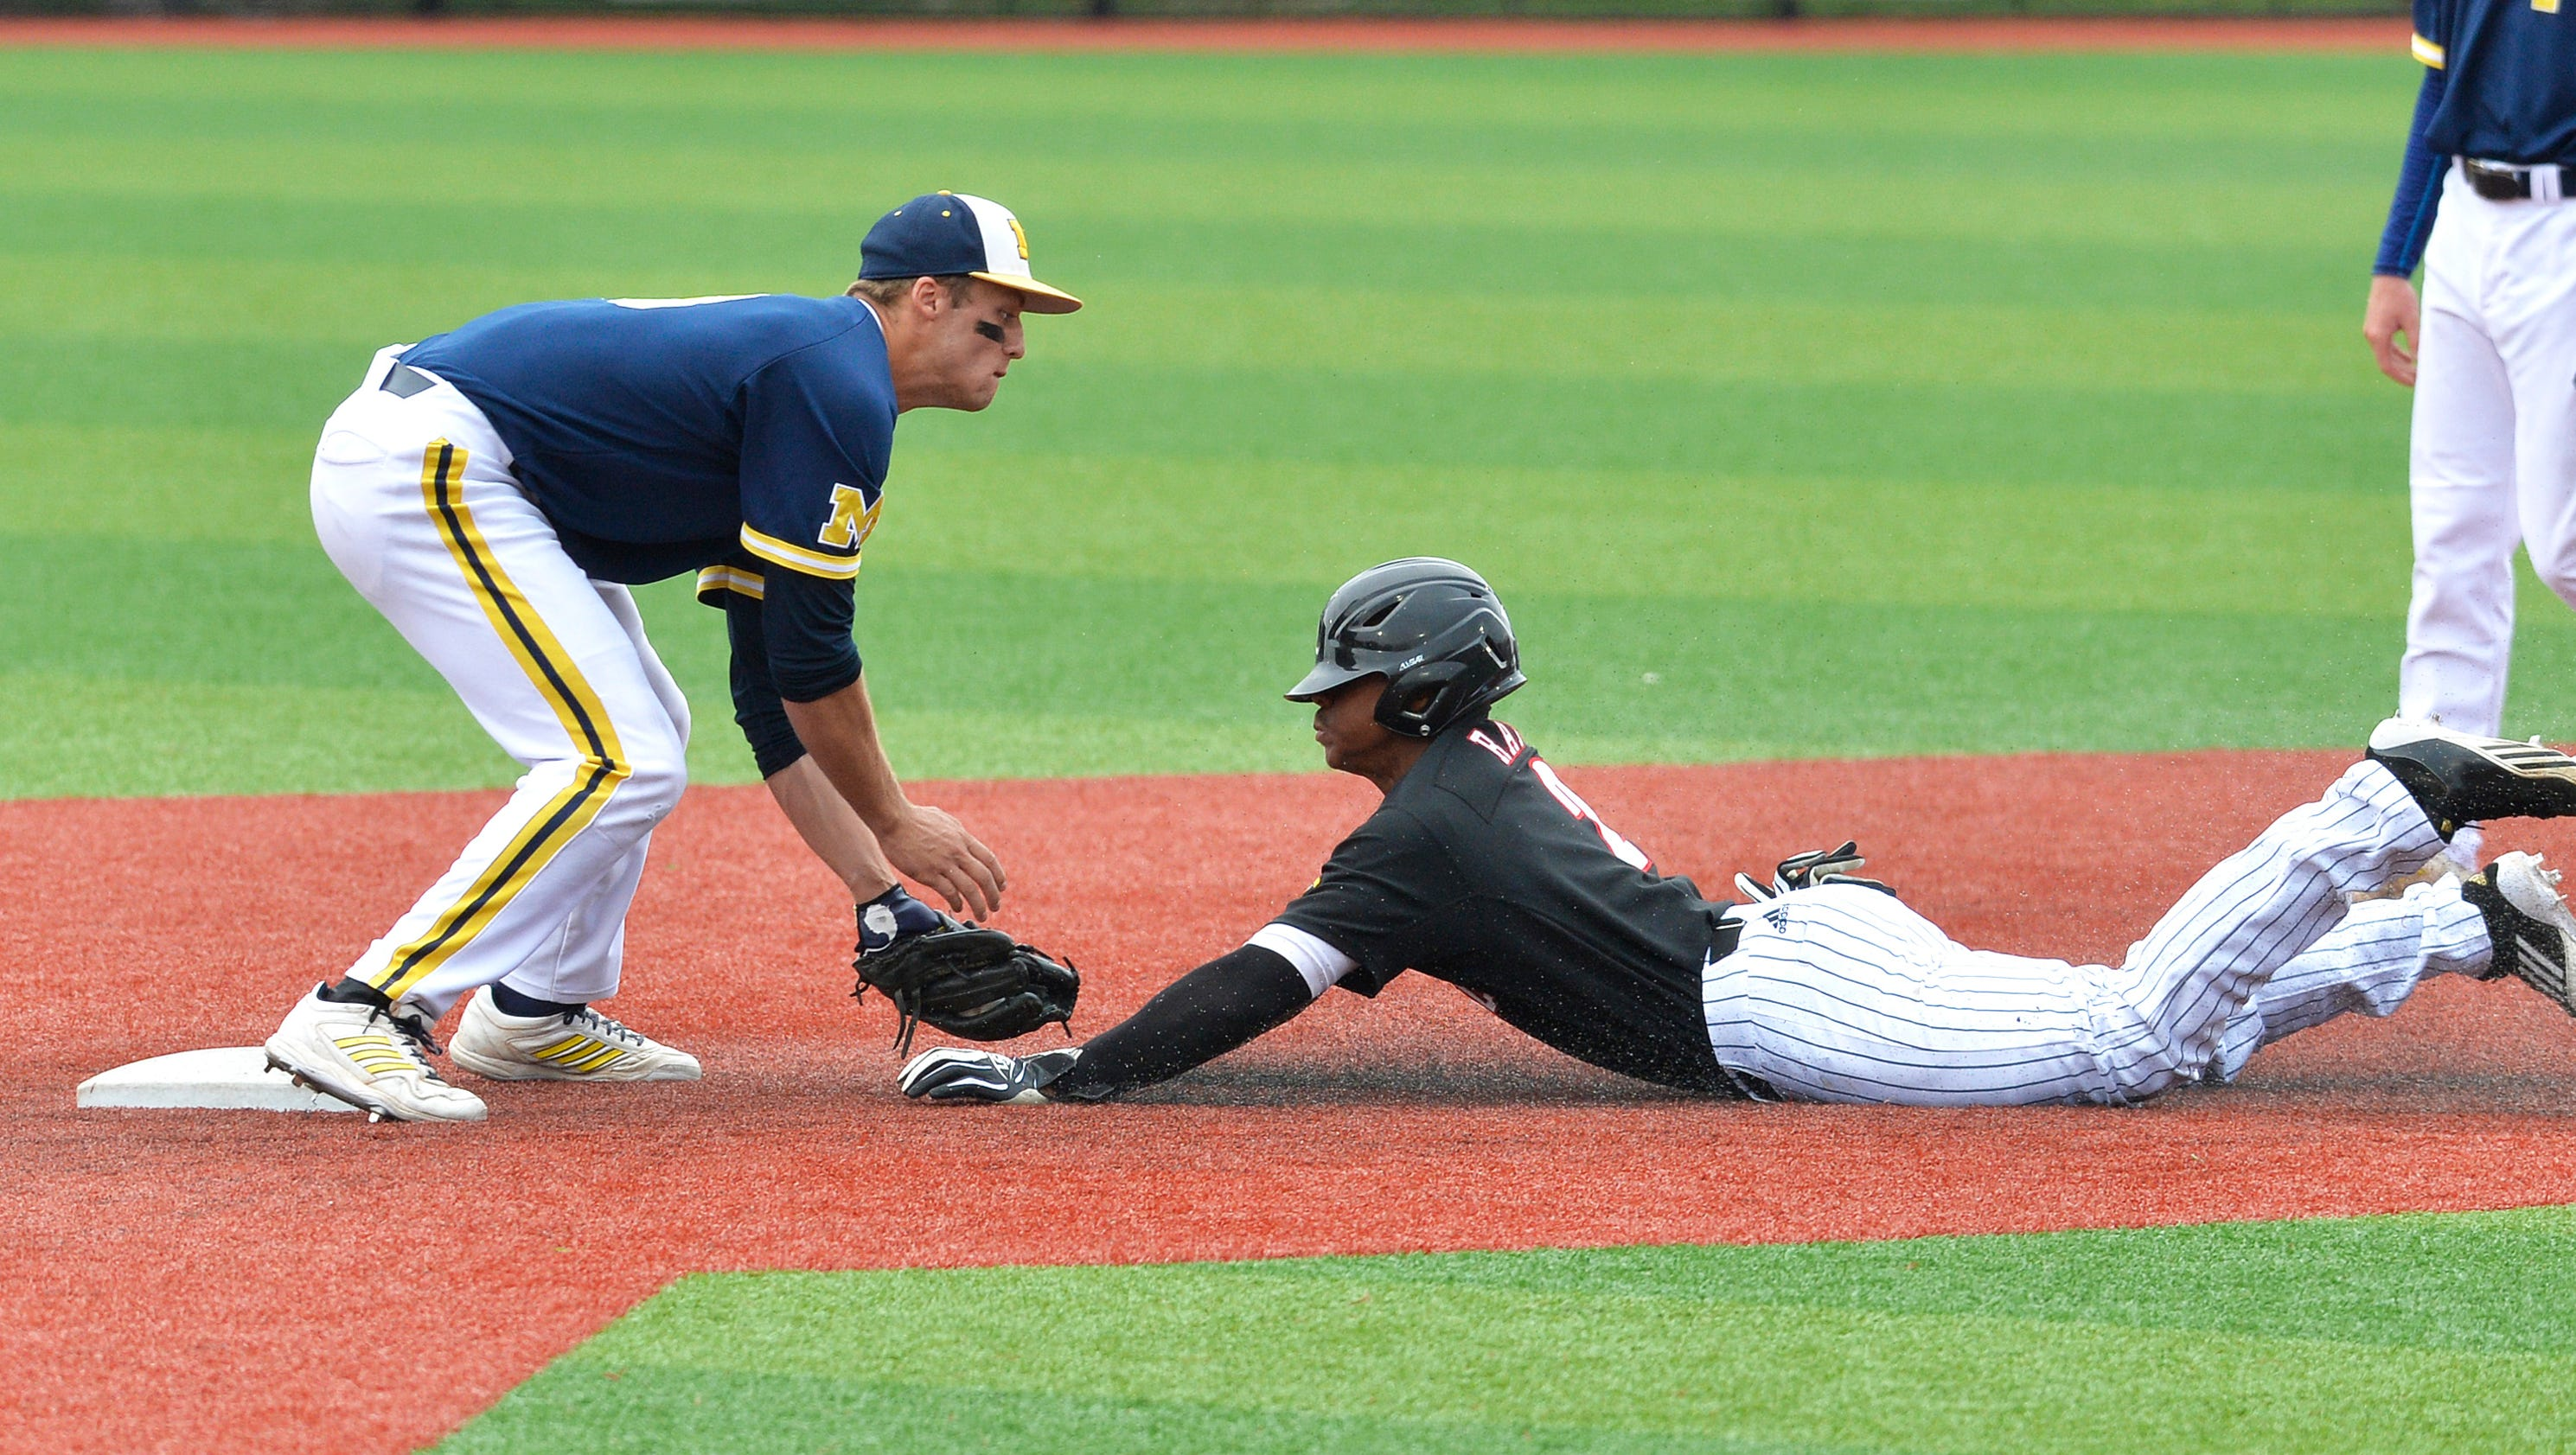 michigan baseball - photo #7